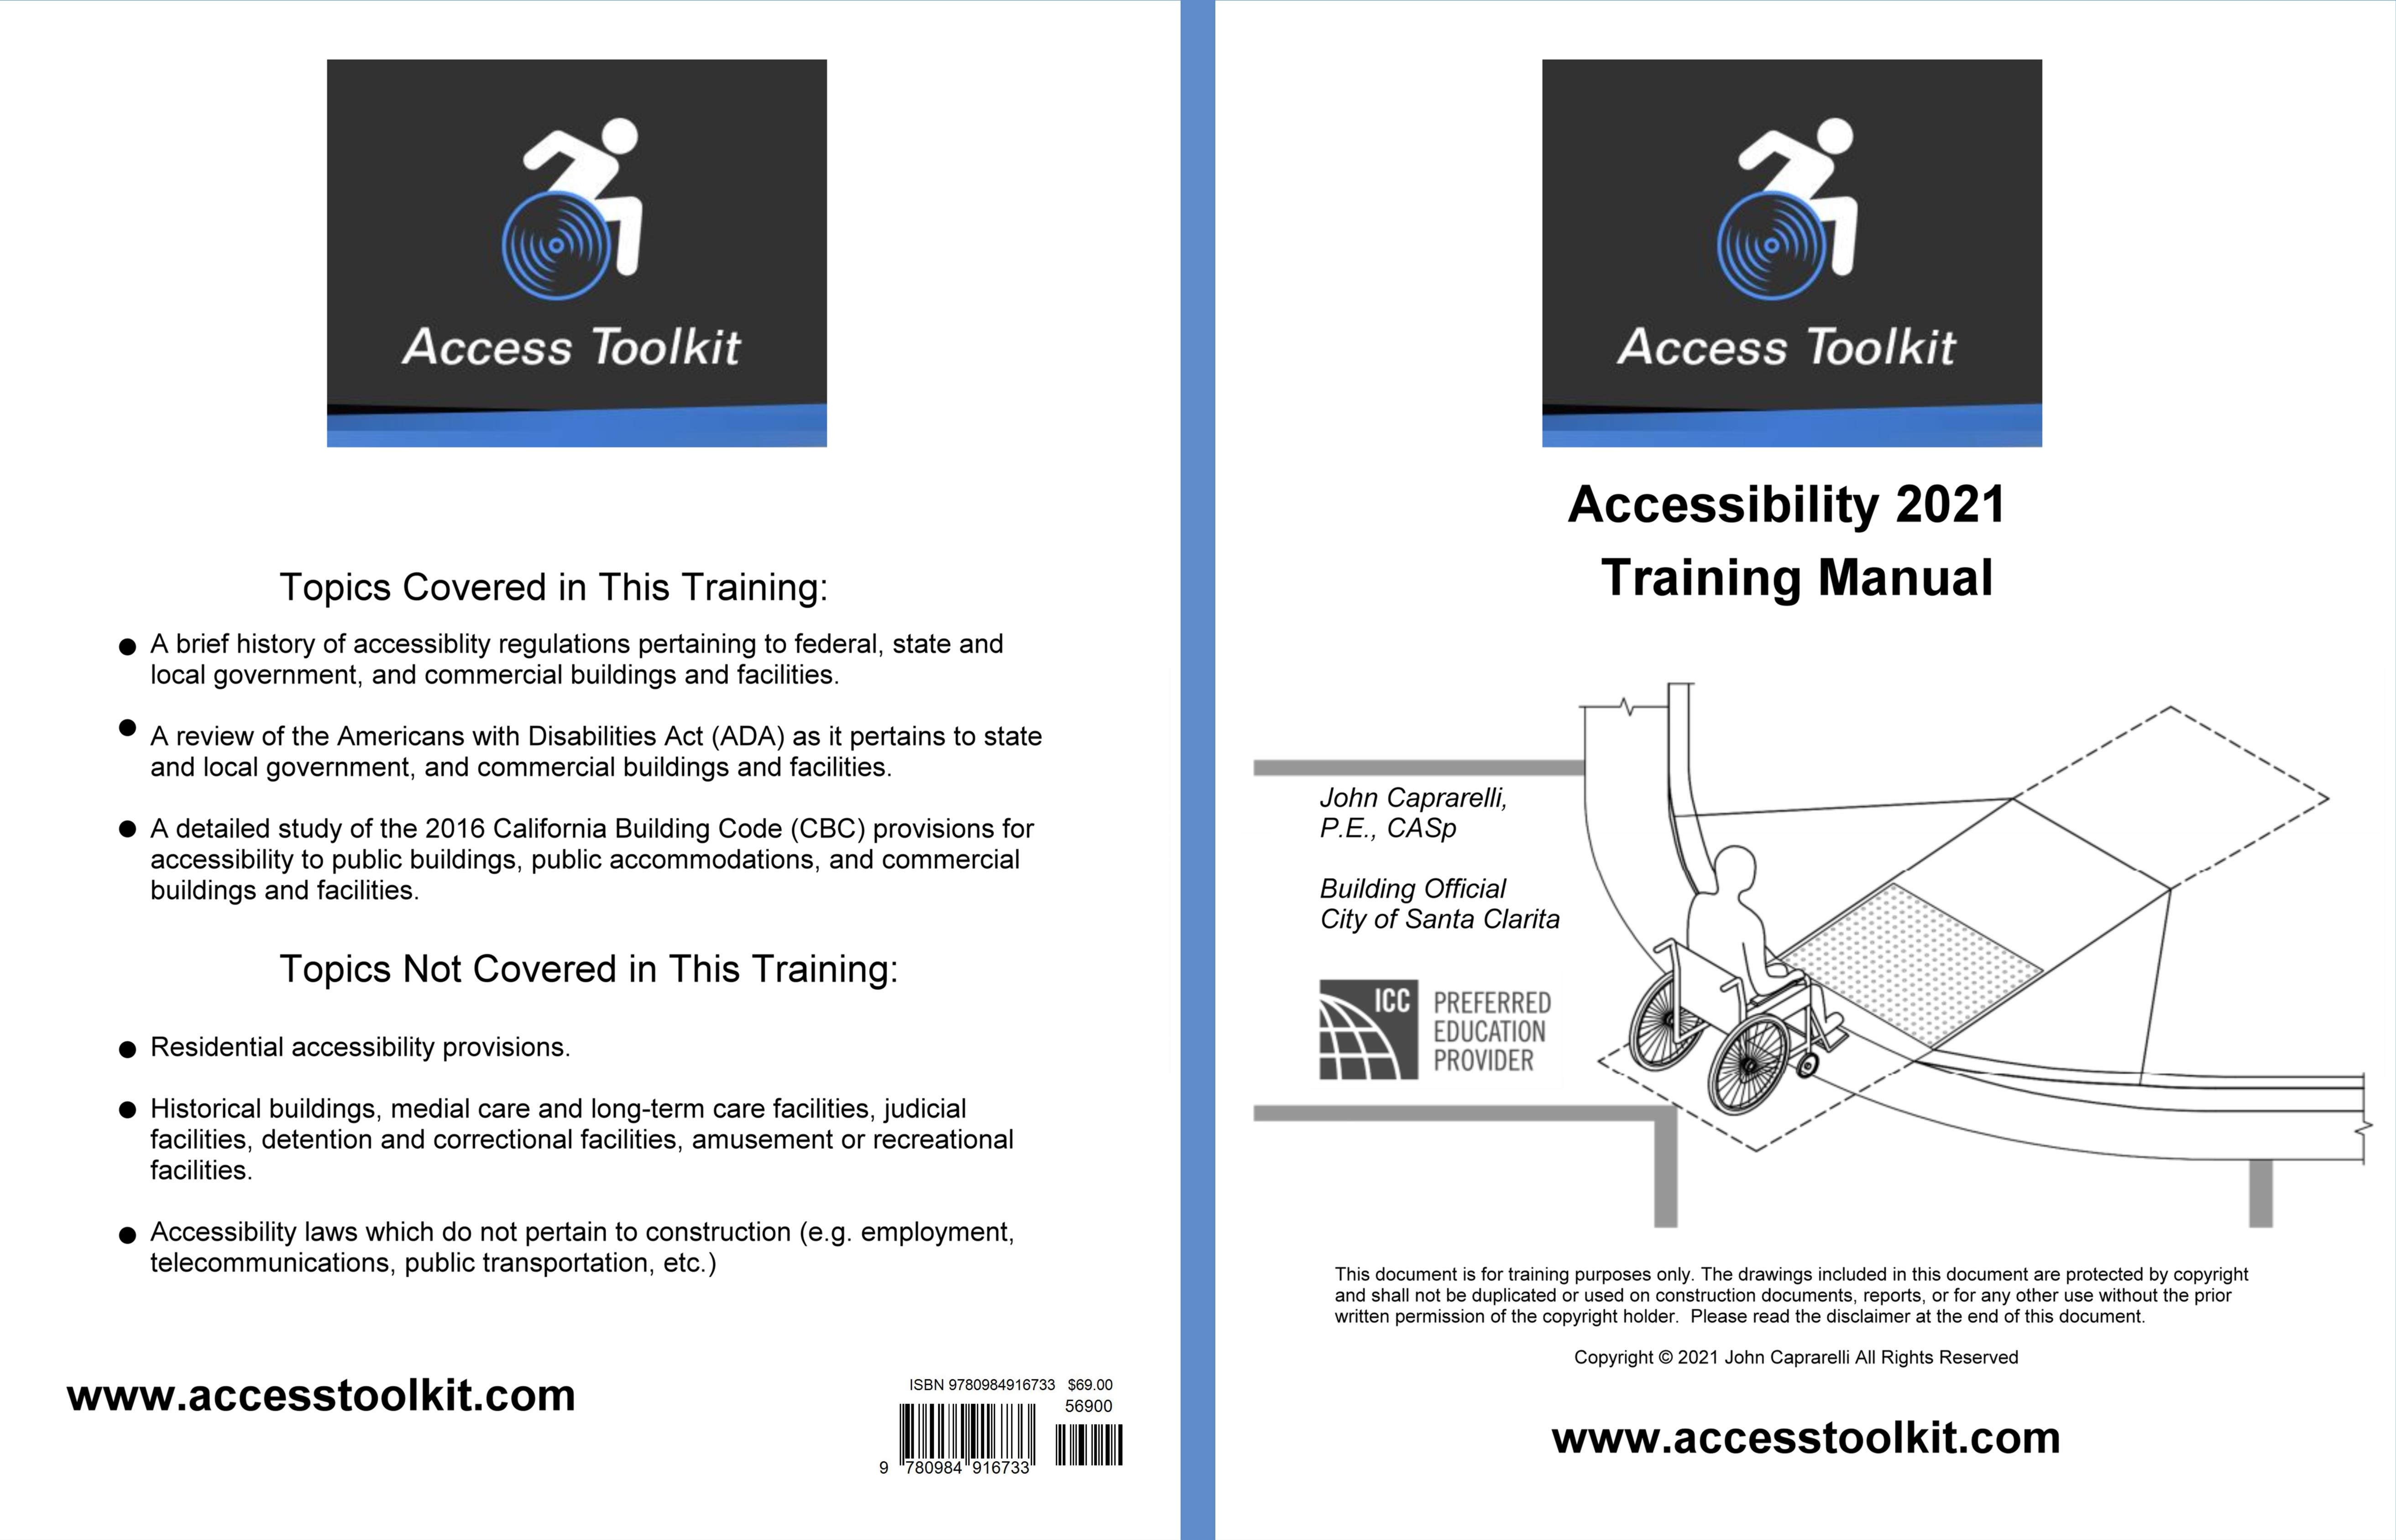 Access Toolkit Accessibility cover image